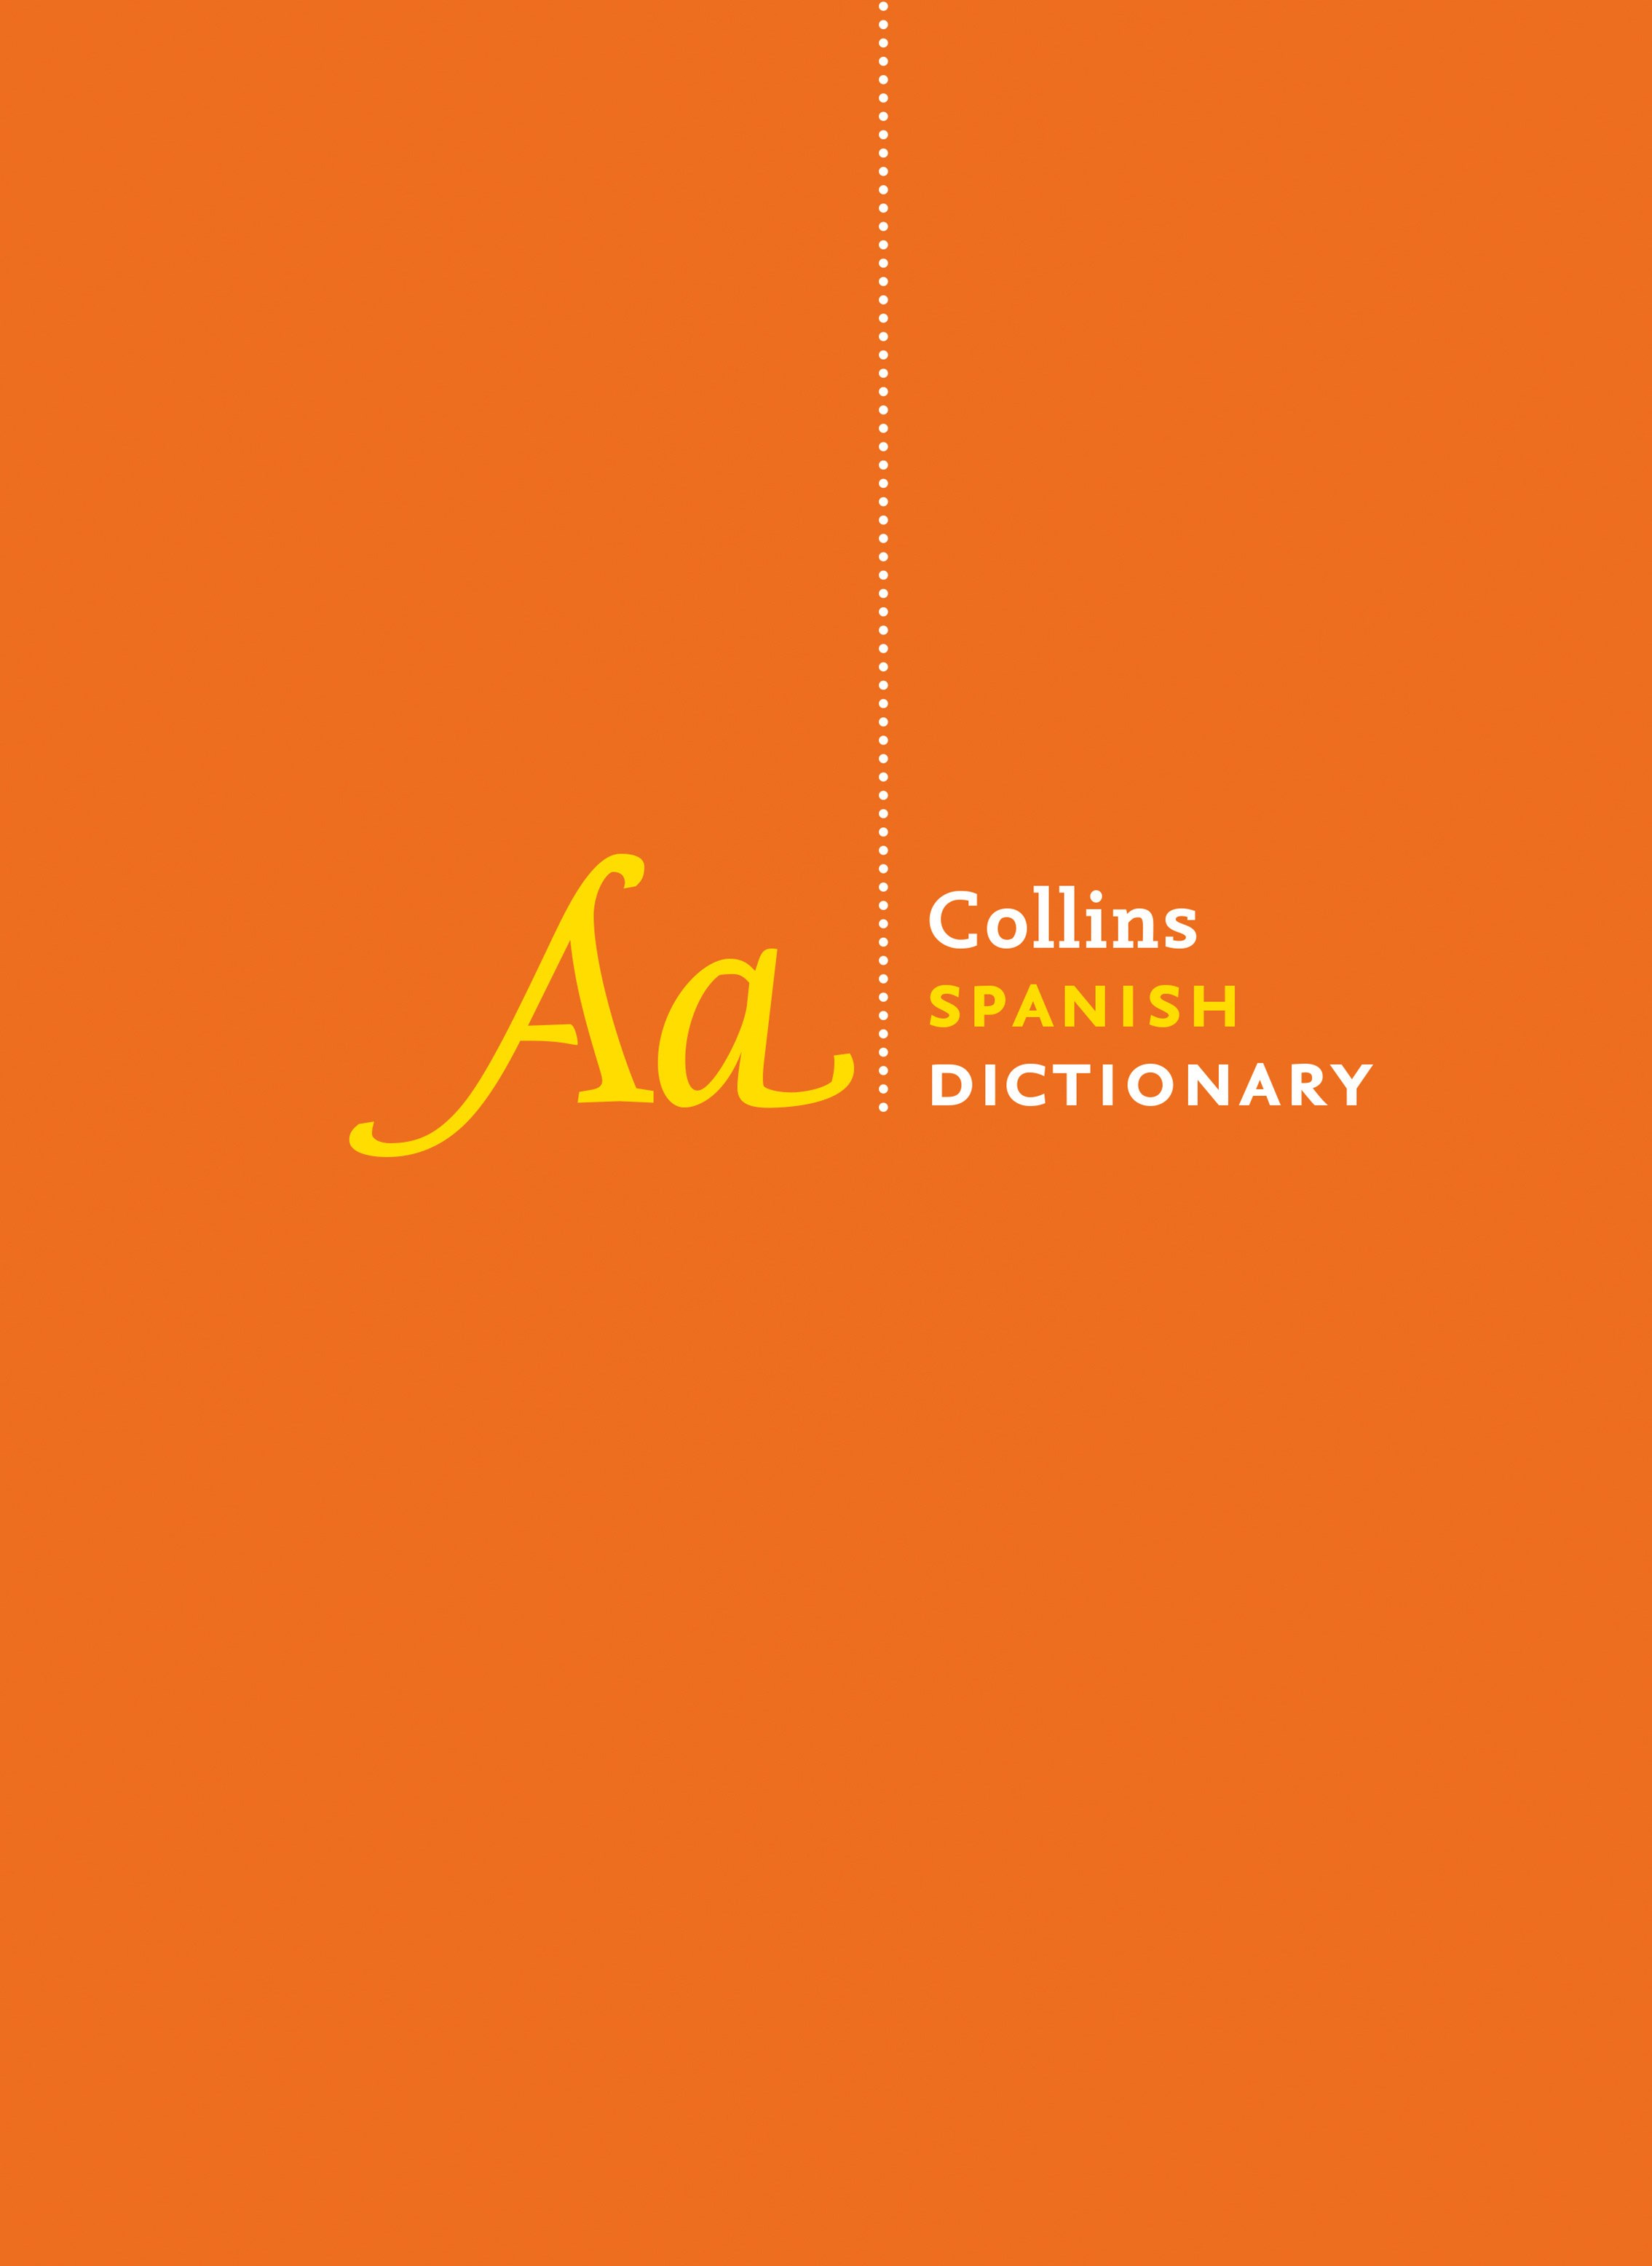 Collins Spanish Dictionary: Complete and Unabridged [10th Edition]